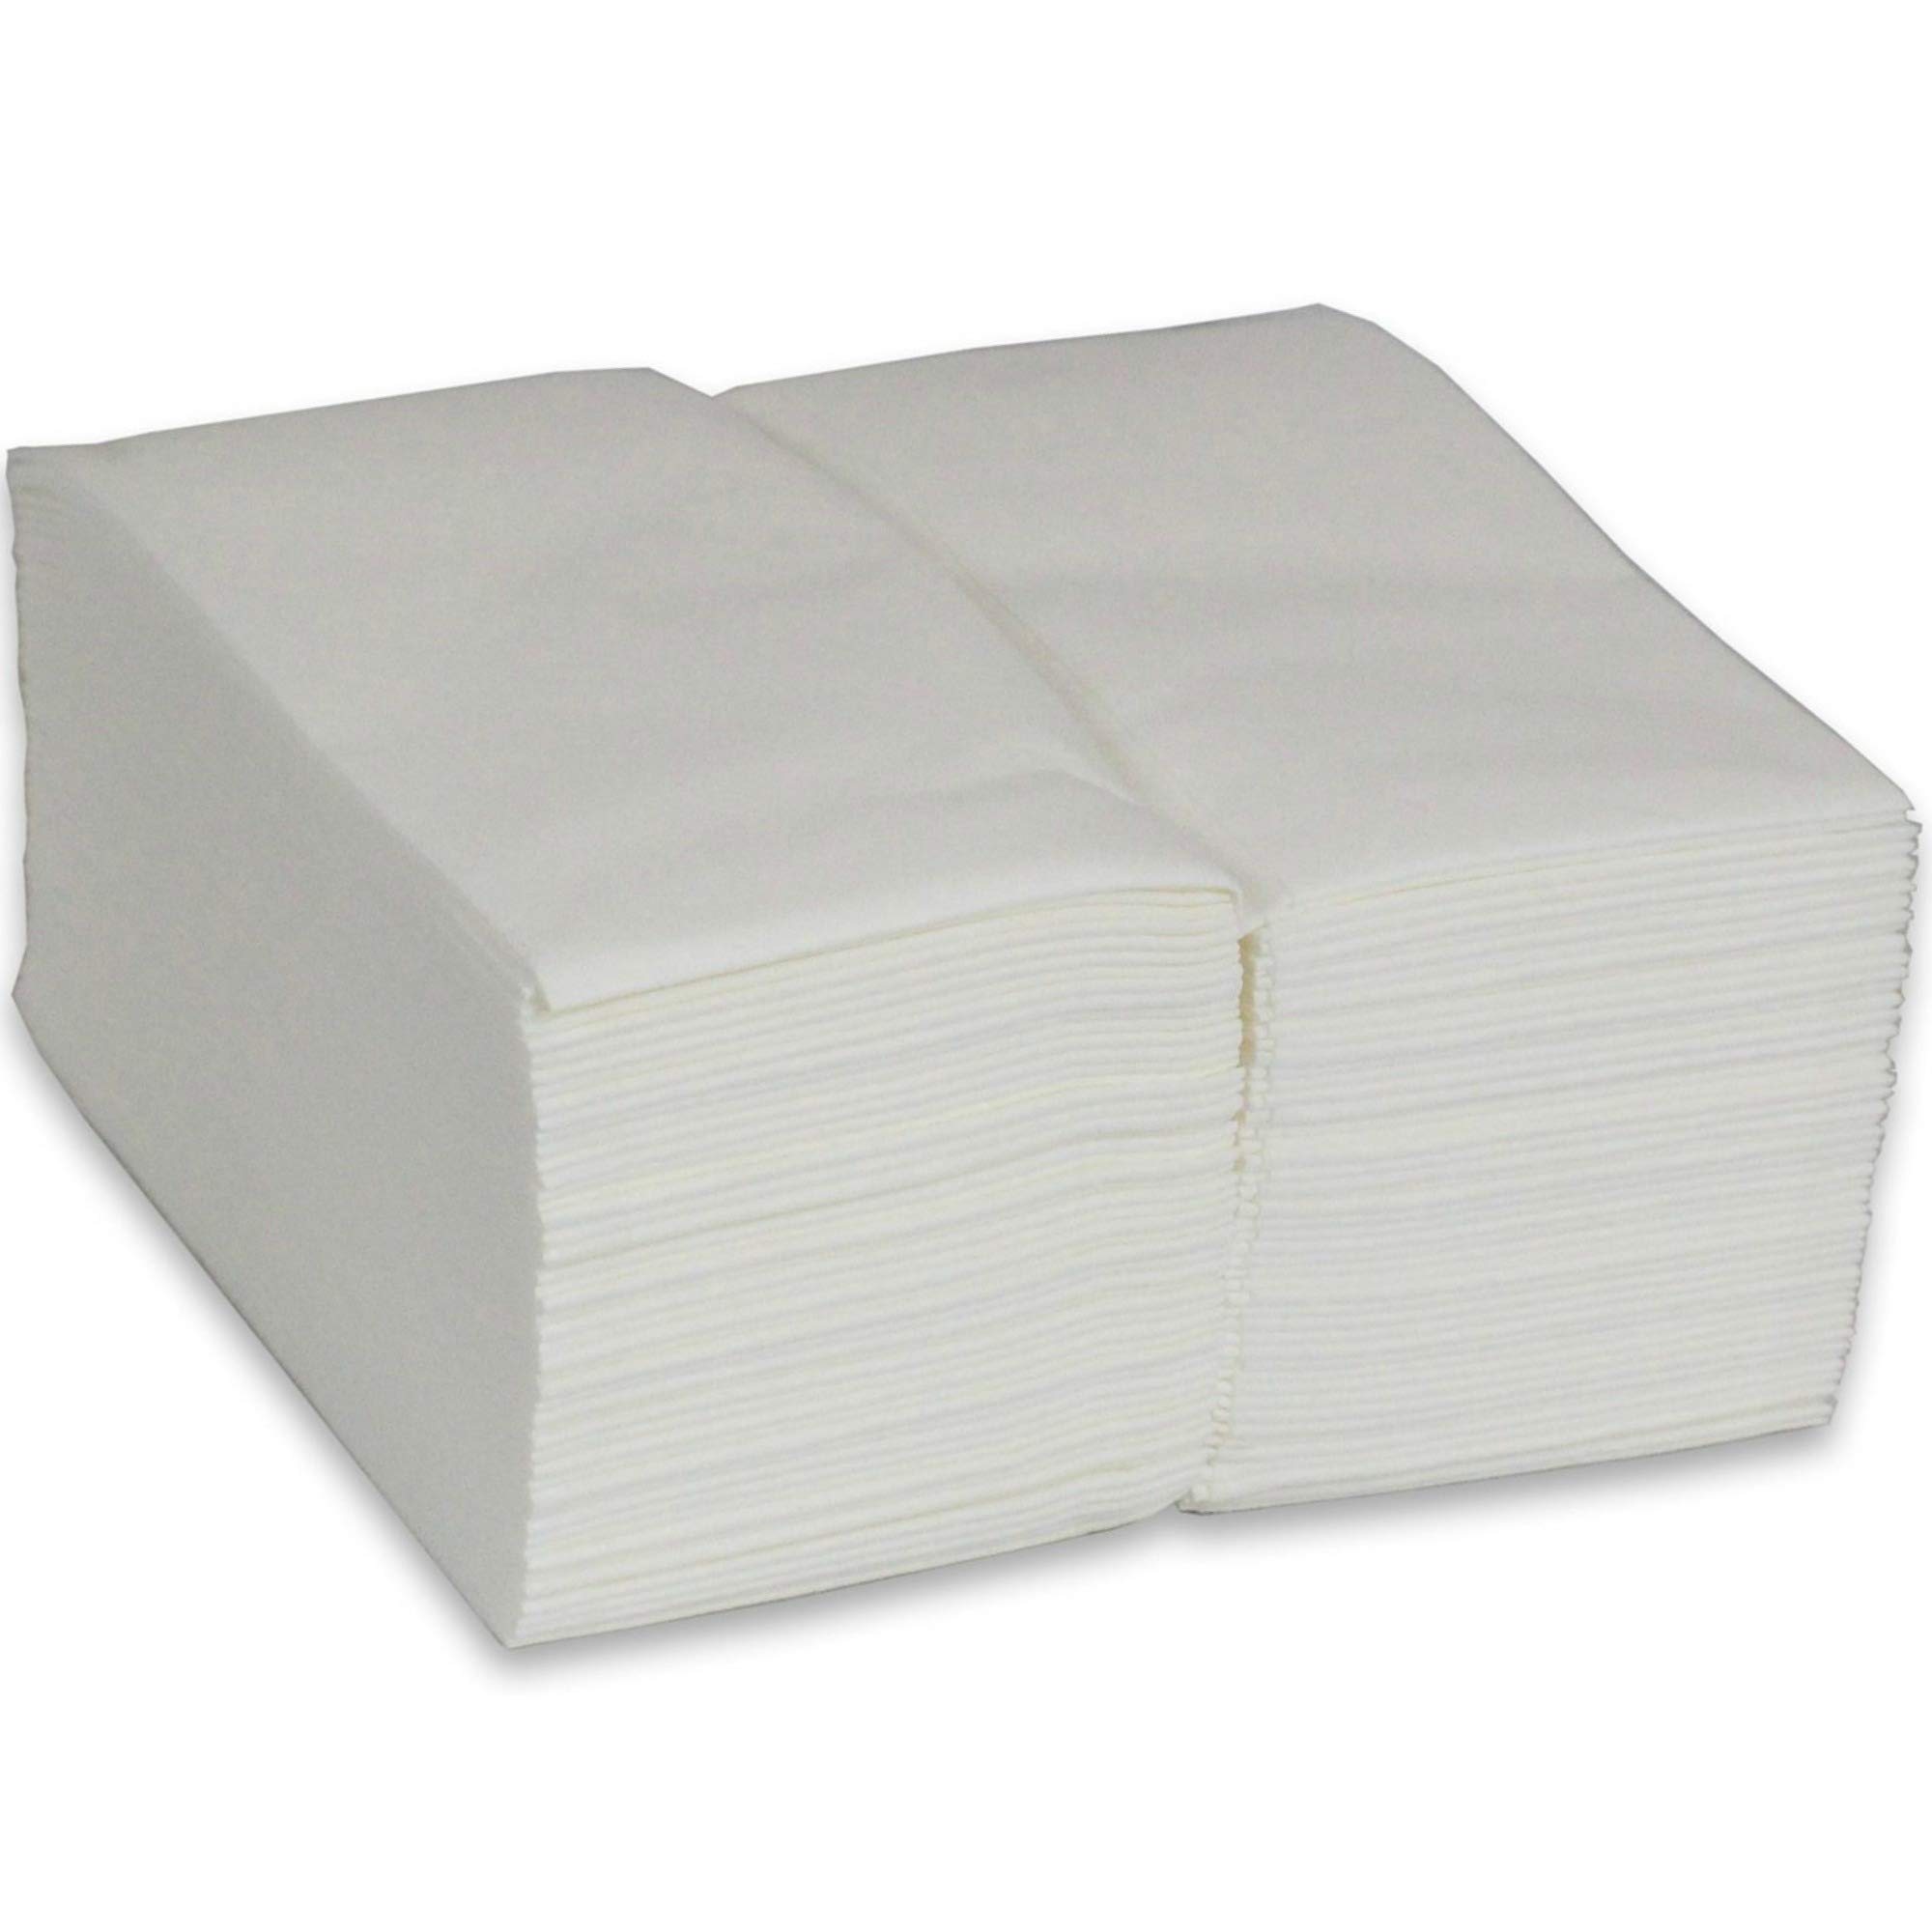 Gypsy's Cart Premium Linen Feel Disposable Guest Towels. Cloth Like Disposable Bathroom Napkins. 1/6 Multifold. (100 Pack) Multi-Use. Kitchen and Bathroom. White